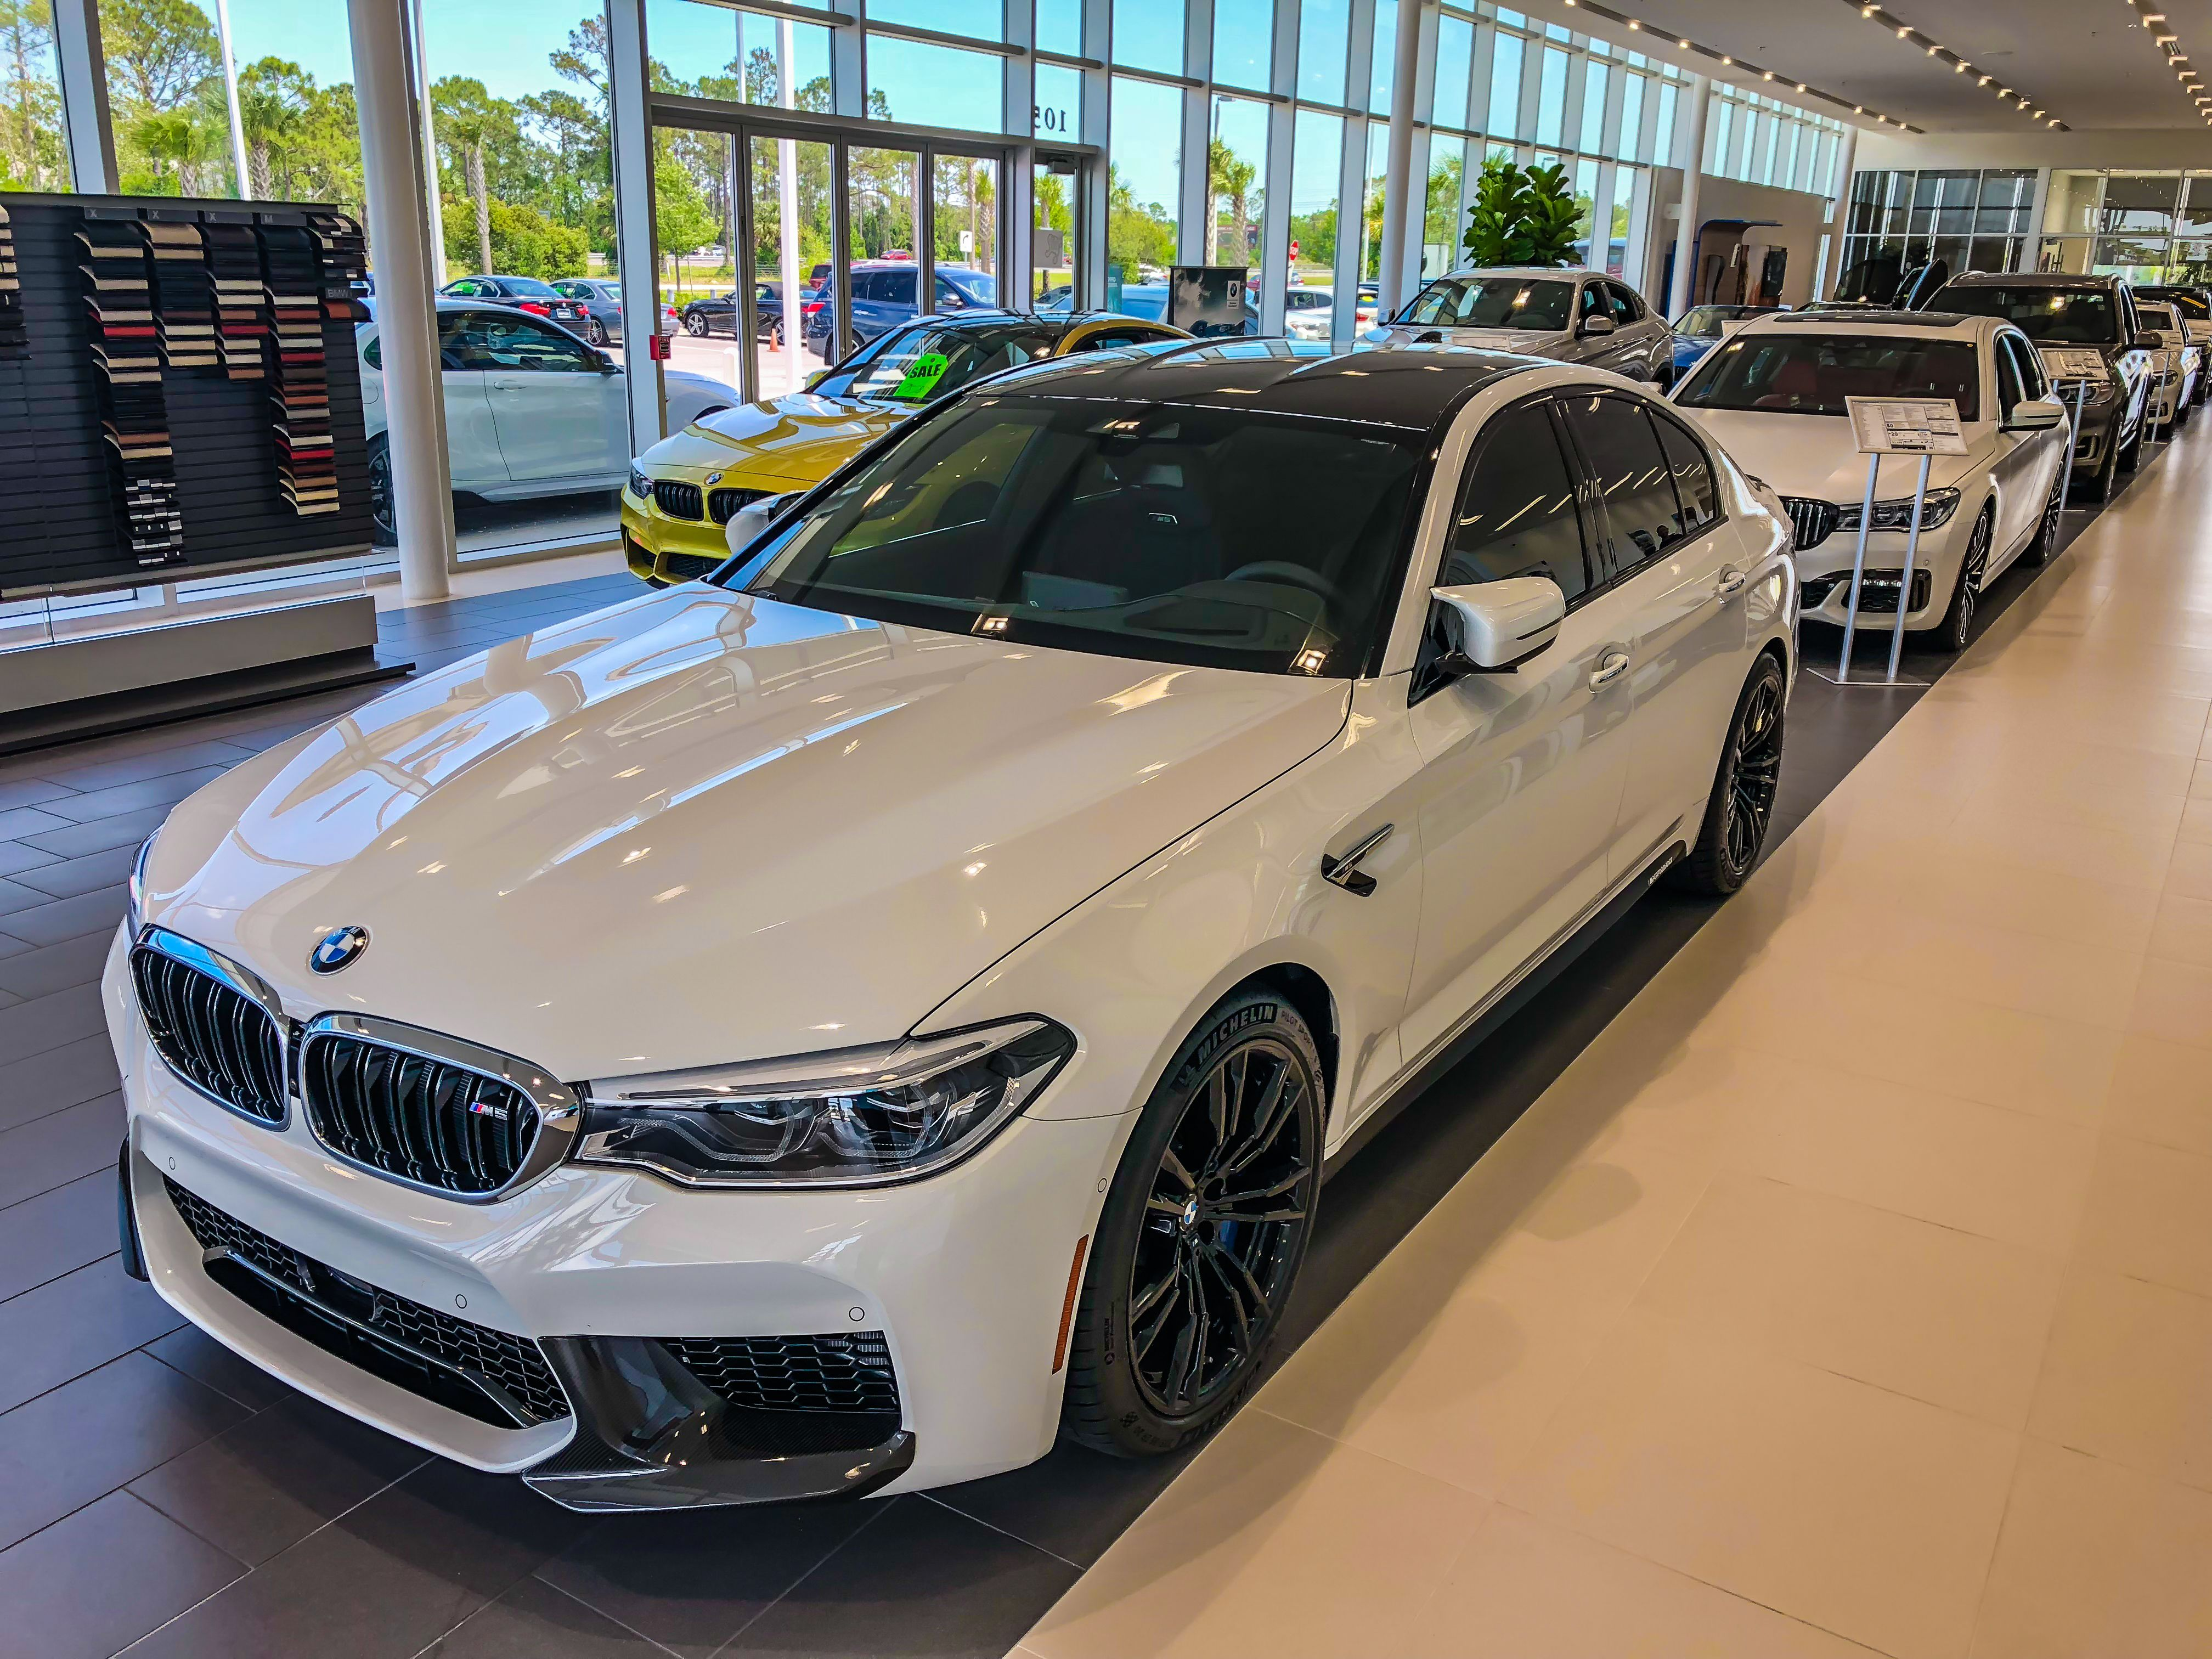 Check Out These Photos From Our Team Member Andrew S Of The All New 2018 Bmw M5 Available Now Fieldsbmw In Daytonabeac Bmw Bmw Dealer Dream Cars Bmw